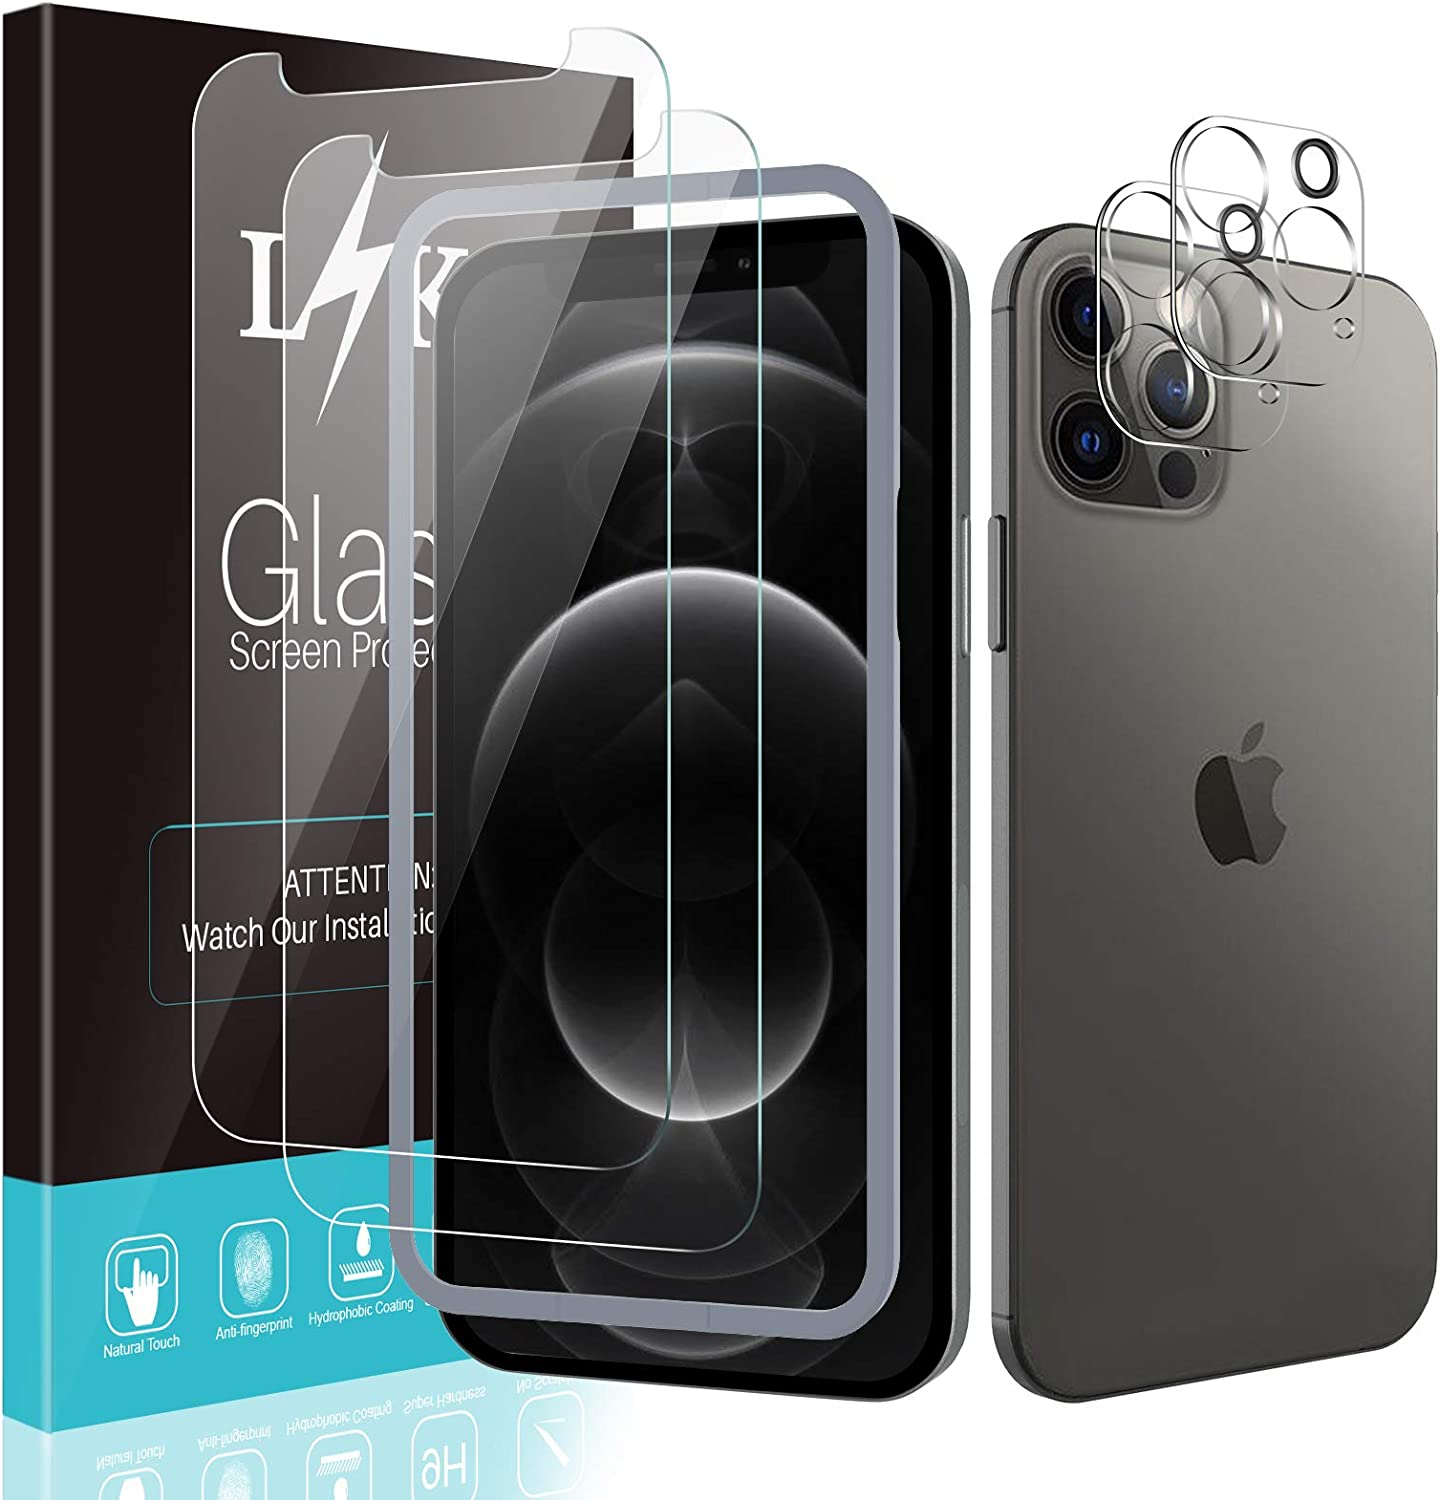 [2+2 Pack] LϟK 2 Pack Tempered Glass Screen Protector & 2 Pack Camera Lens Protector Compatible for iPhone 12 Pro 5G 6.1 inch -Not for iPhone 12, Tempered Glass, Come with Installation Tray - Gray